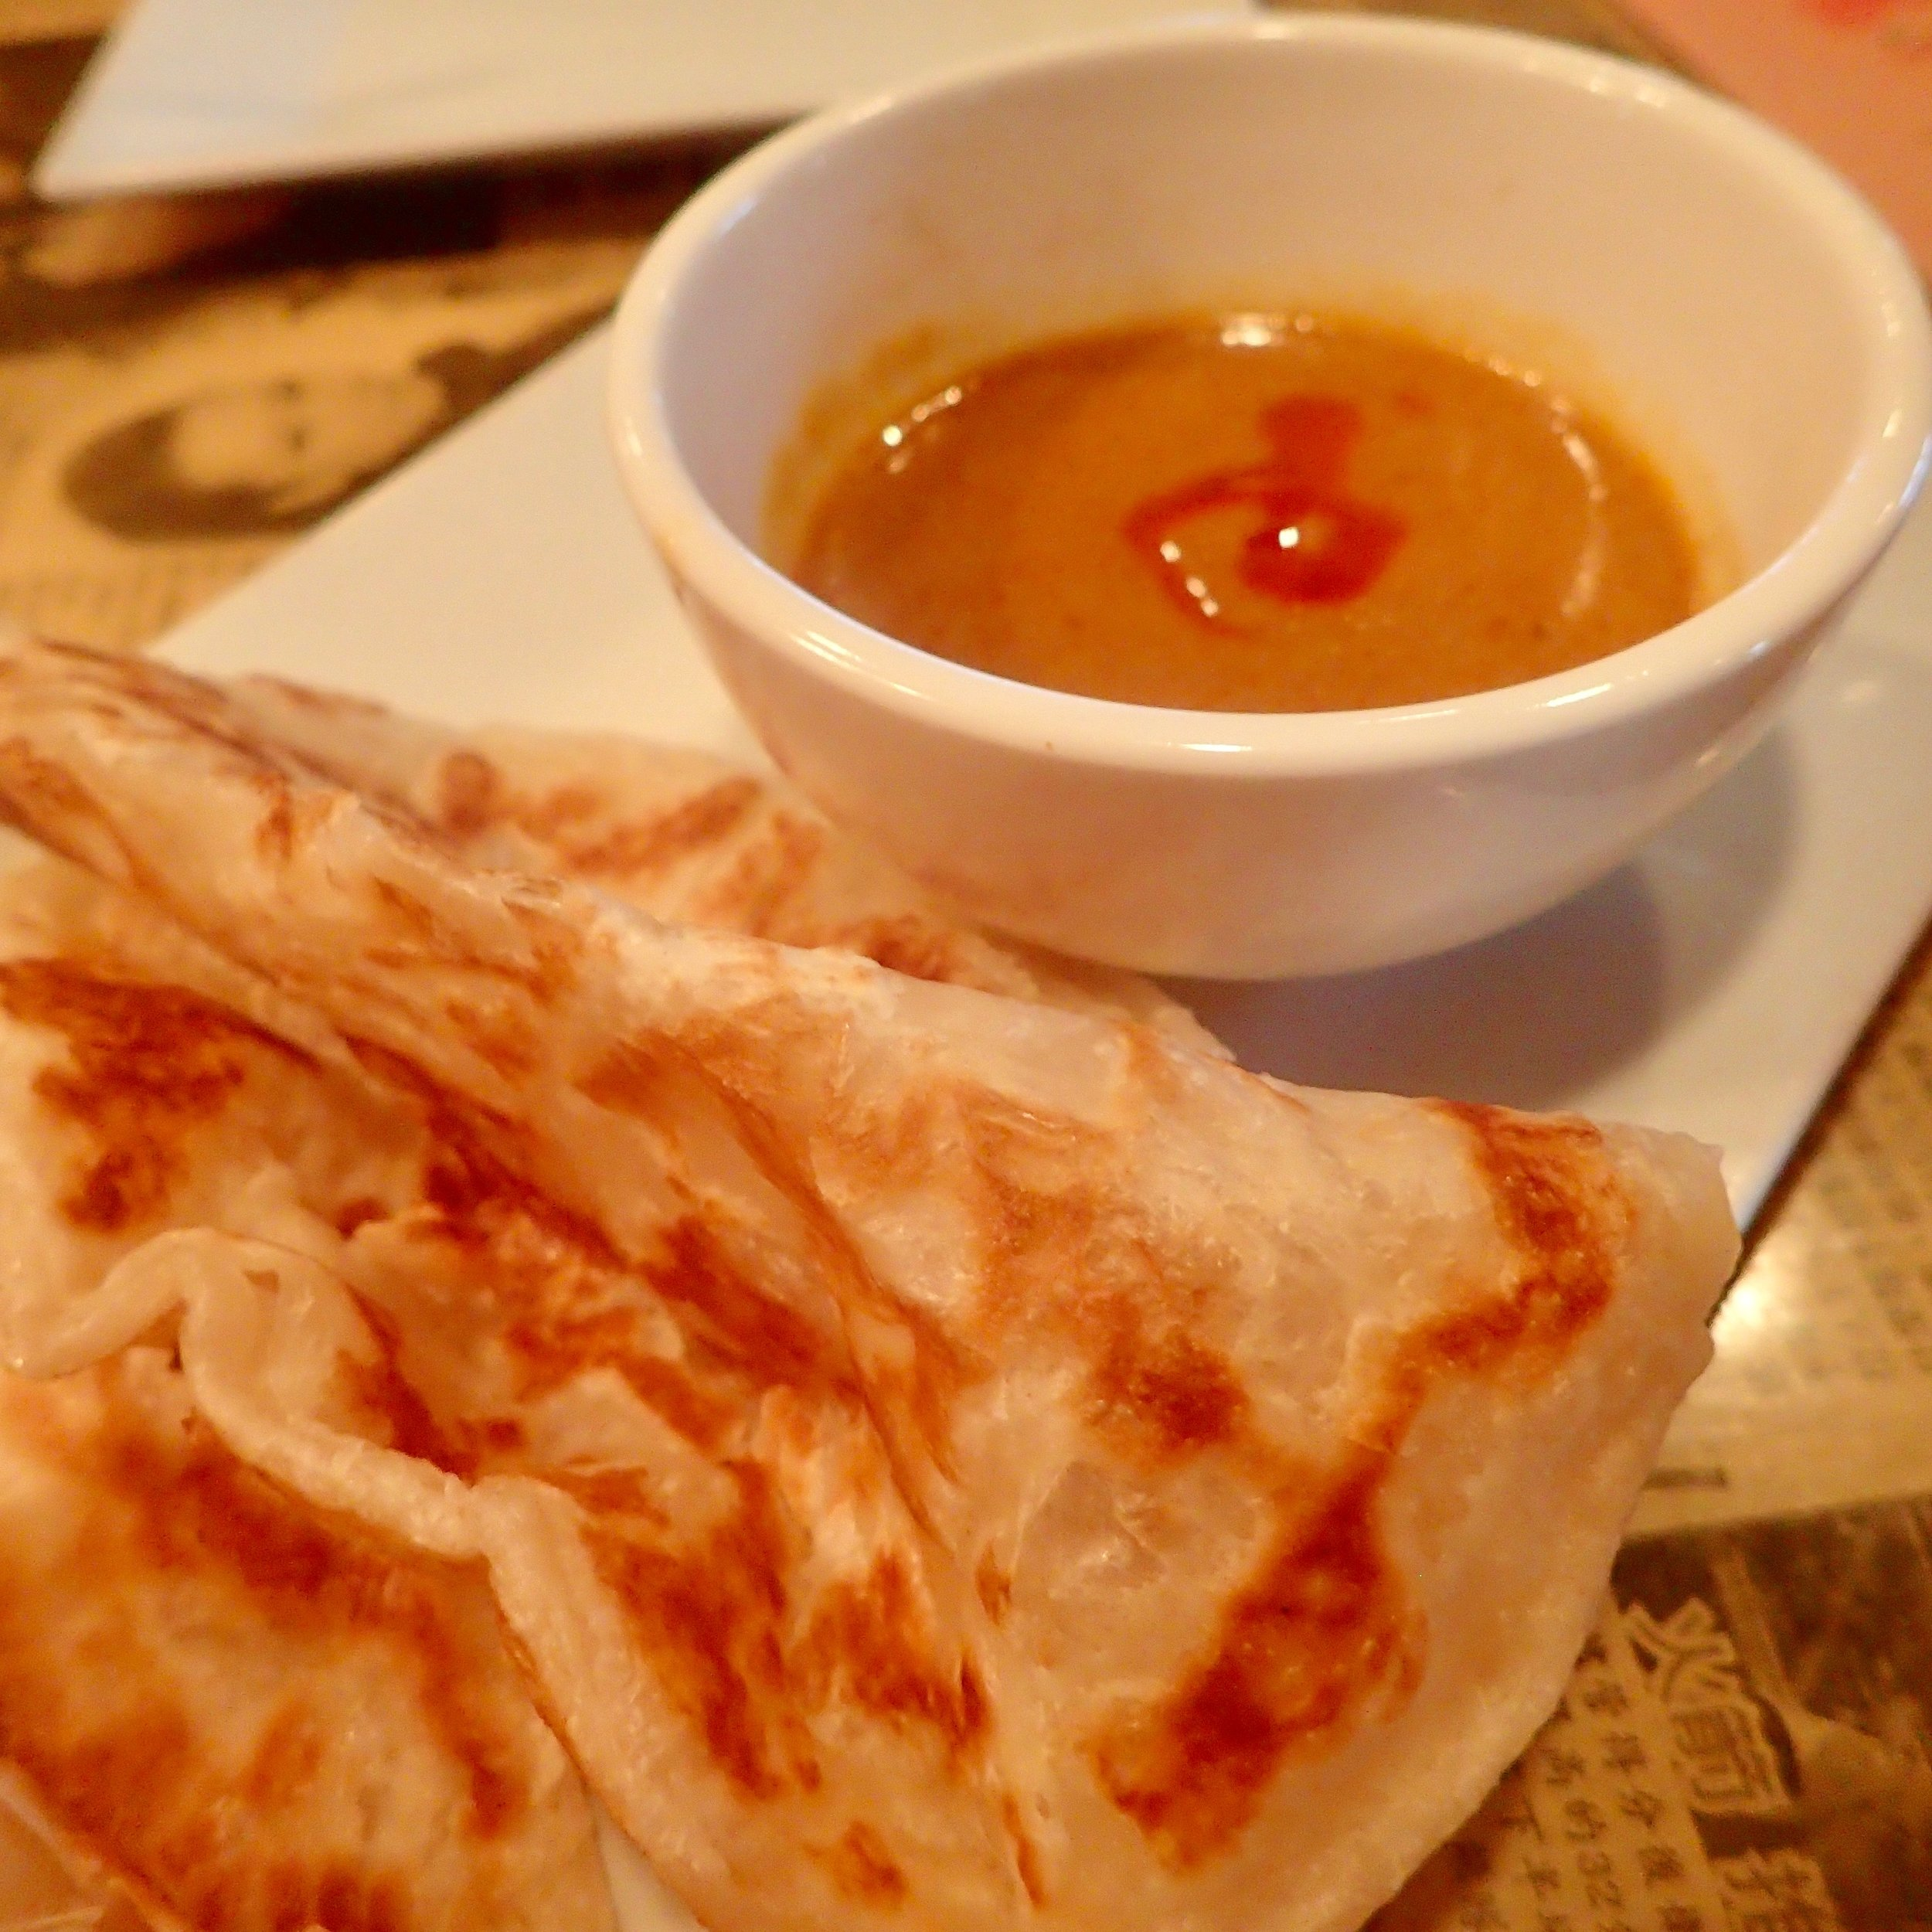 Roti Canai -- a staple since Day 1. It's a flaky bread served with a rich curry sauce dip, and another one of my family's must-haves. We order it with extra pancakes.